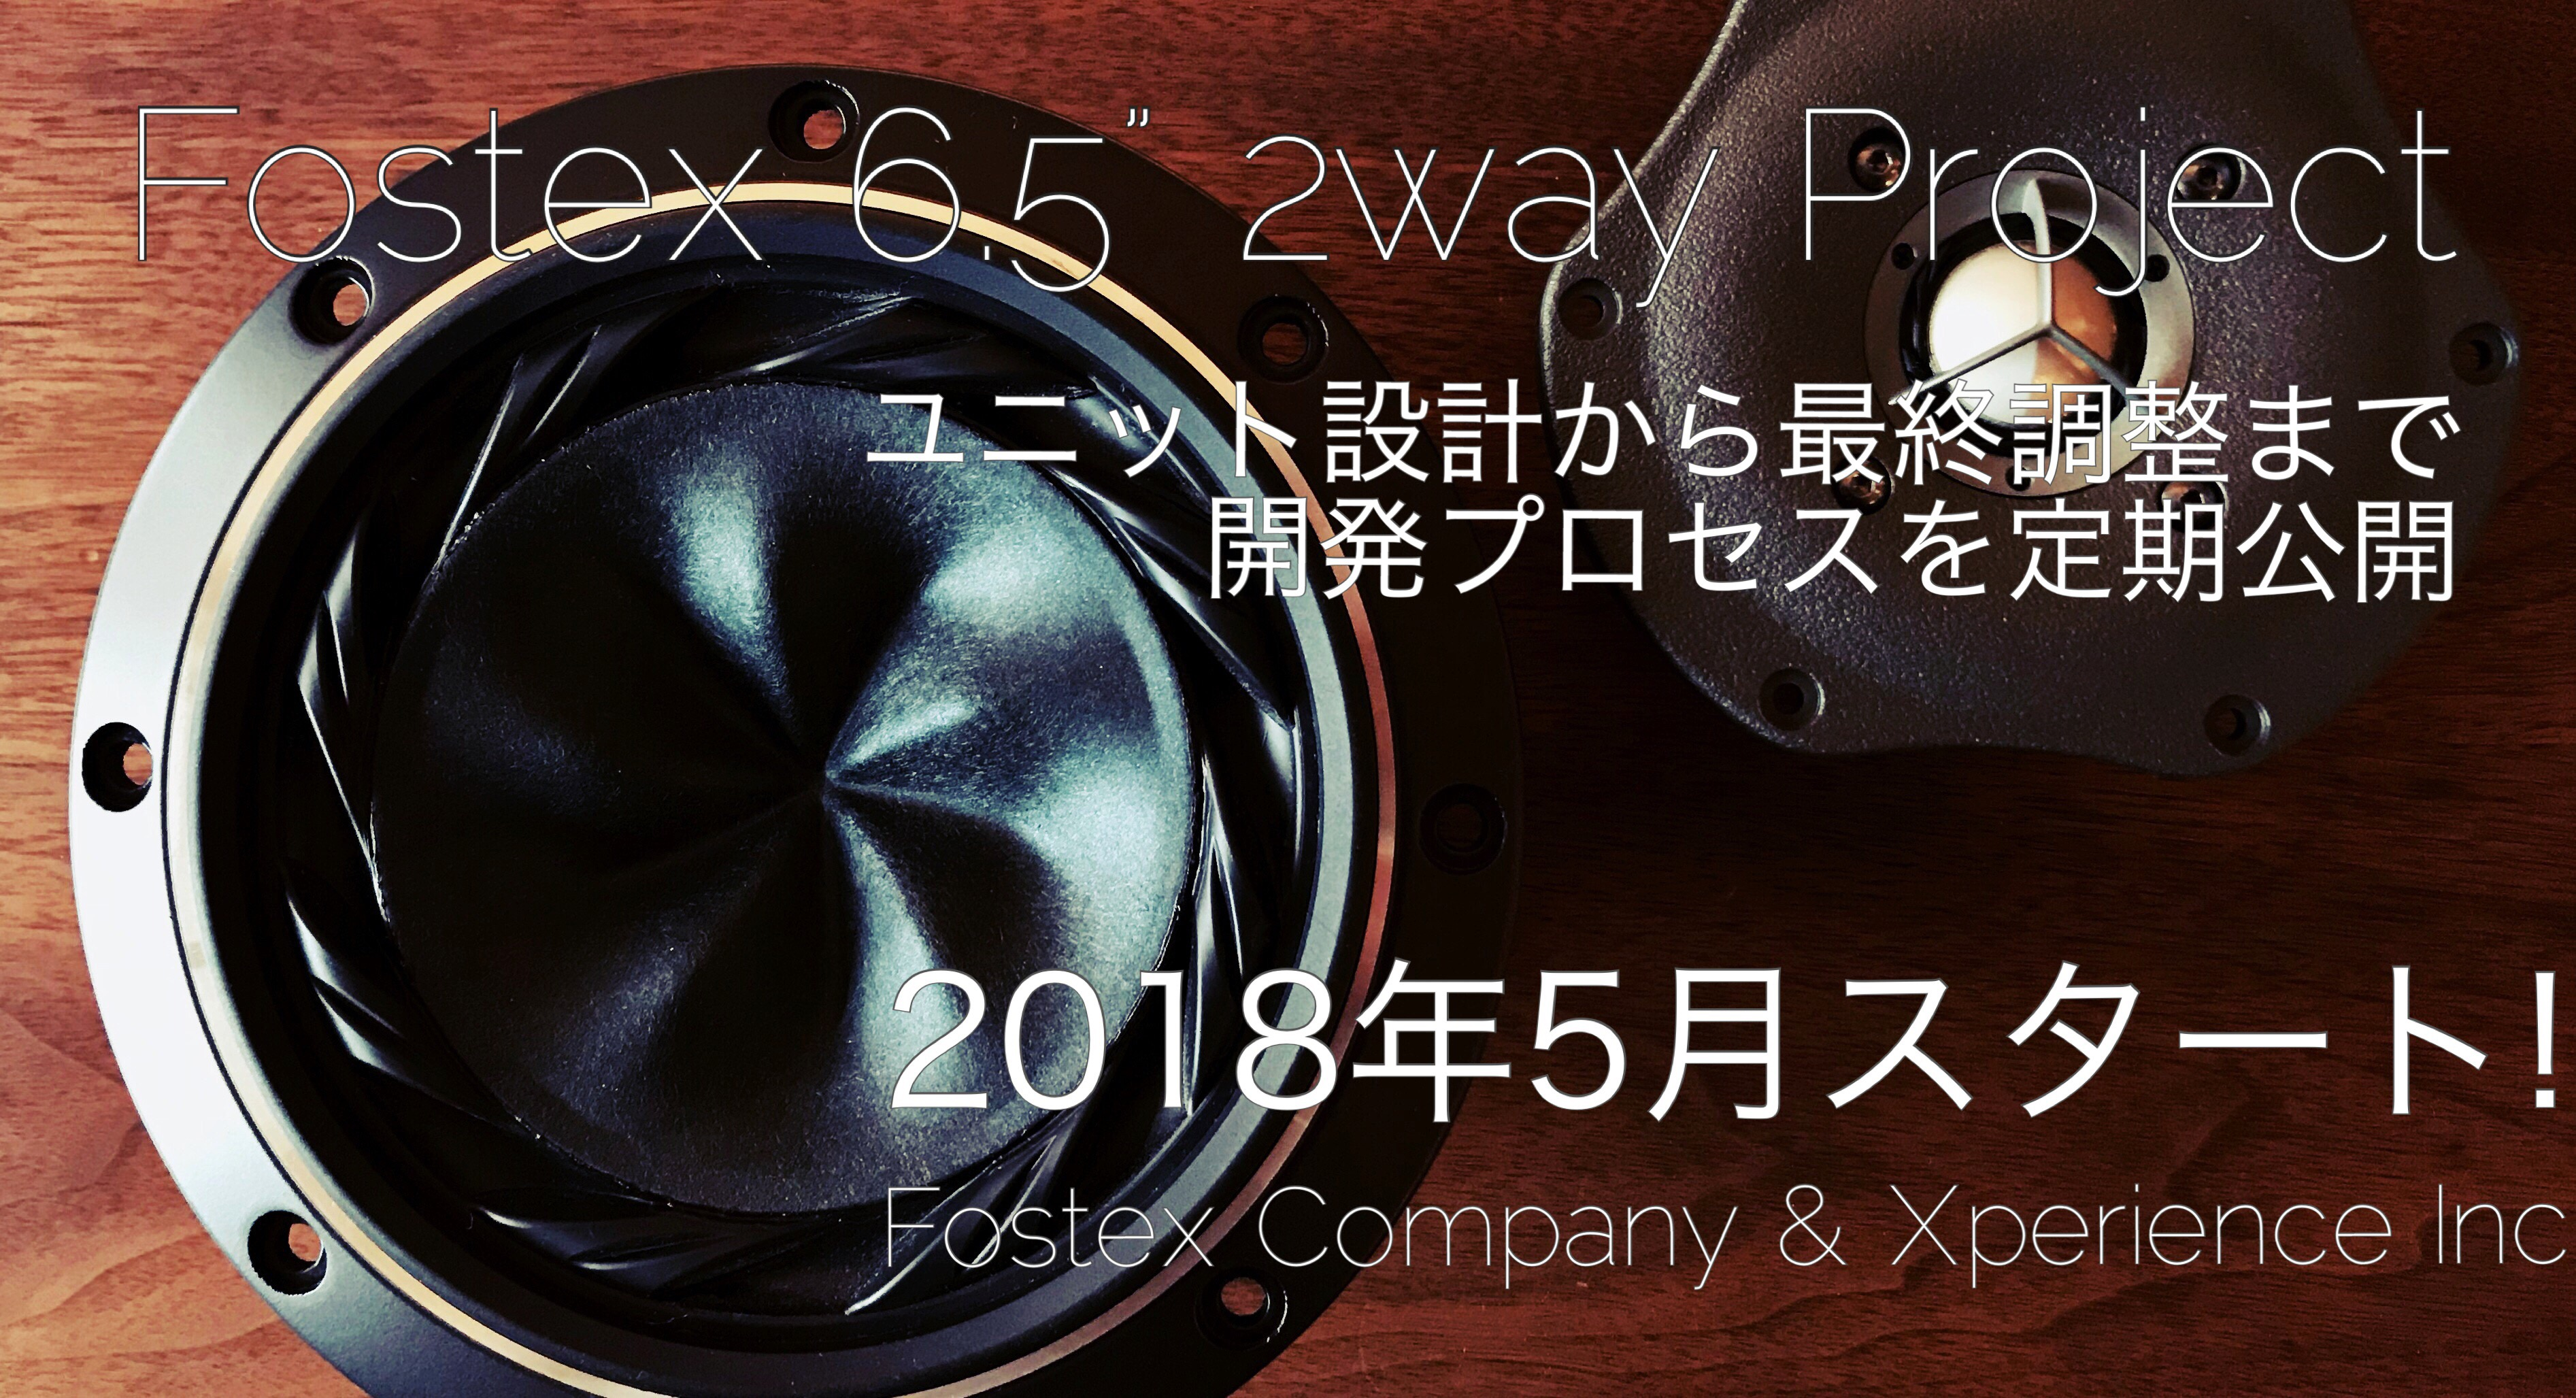 FOSTEX 6.5″ 2way Project 始動